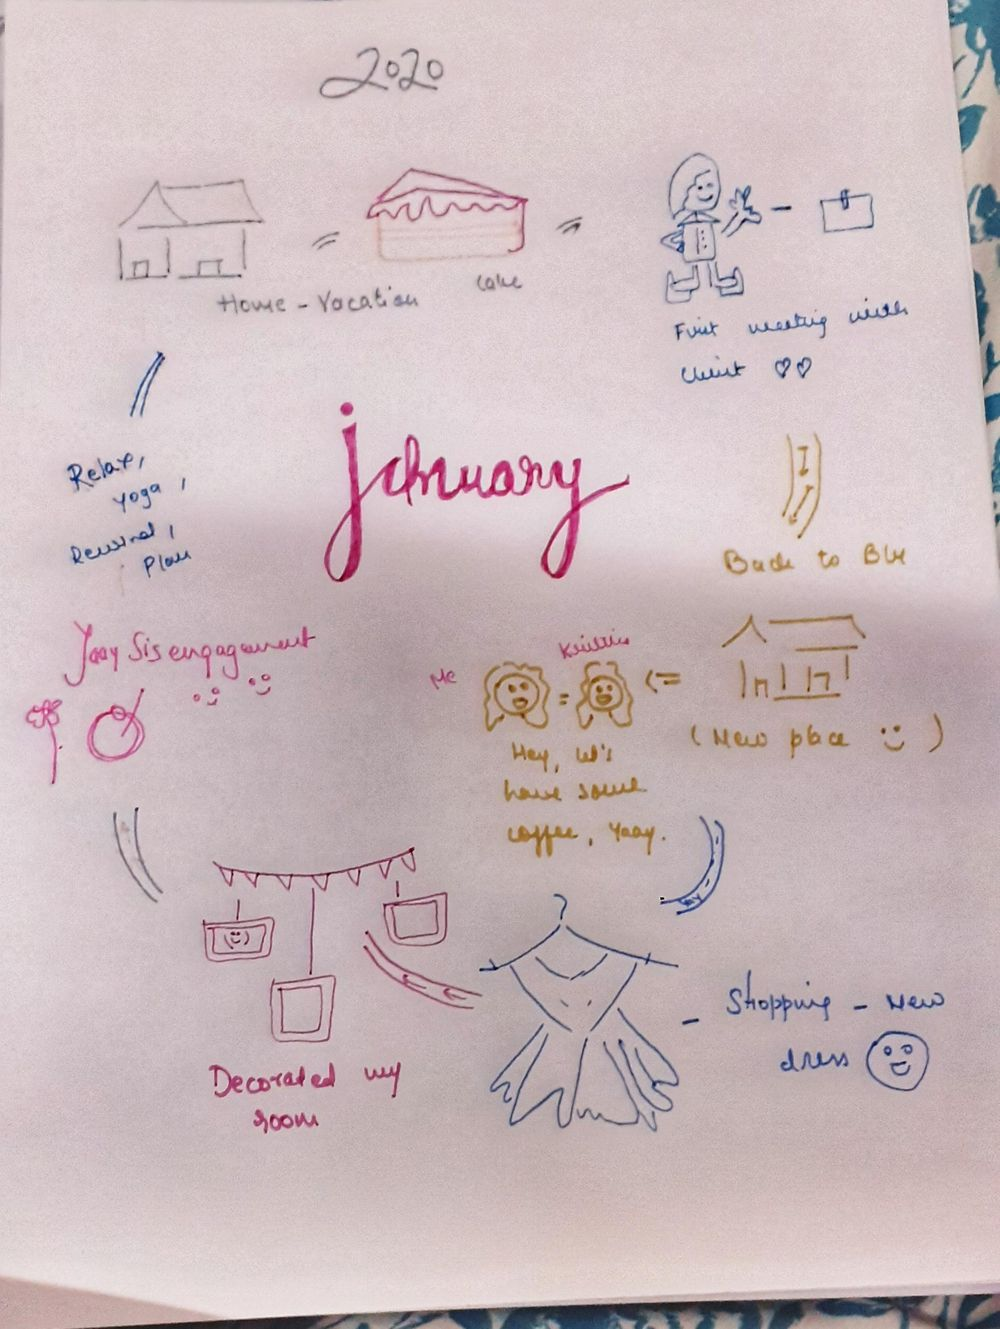 Year 2020 - Monthly reflections - image 4 - student project